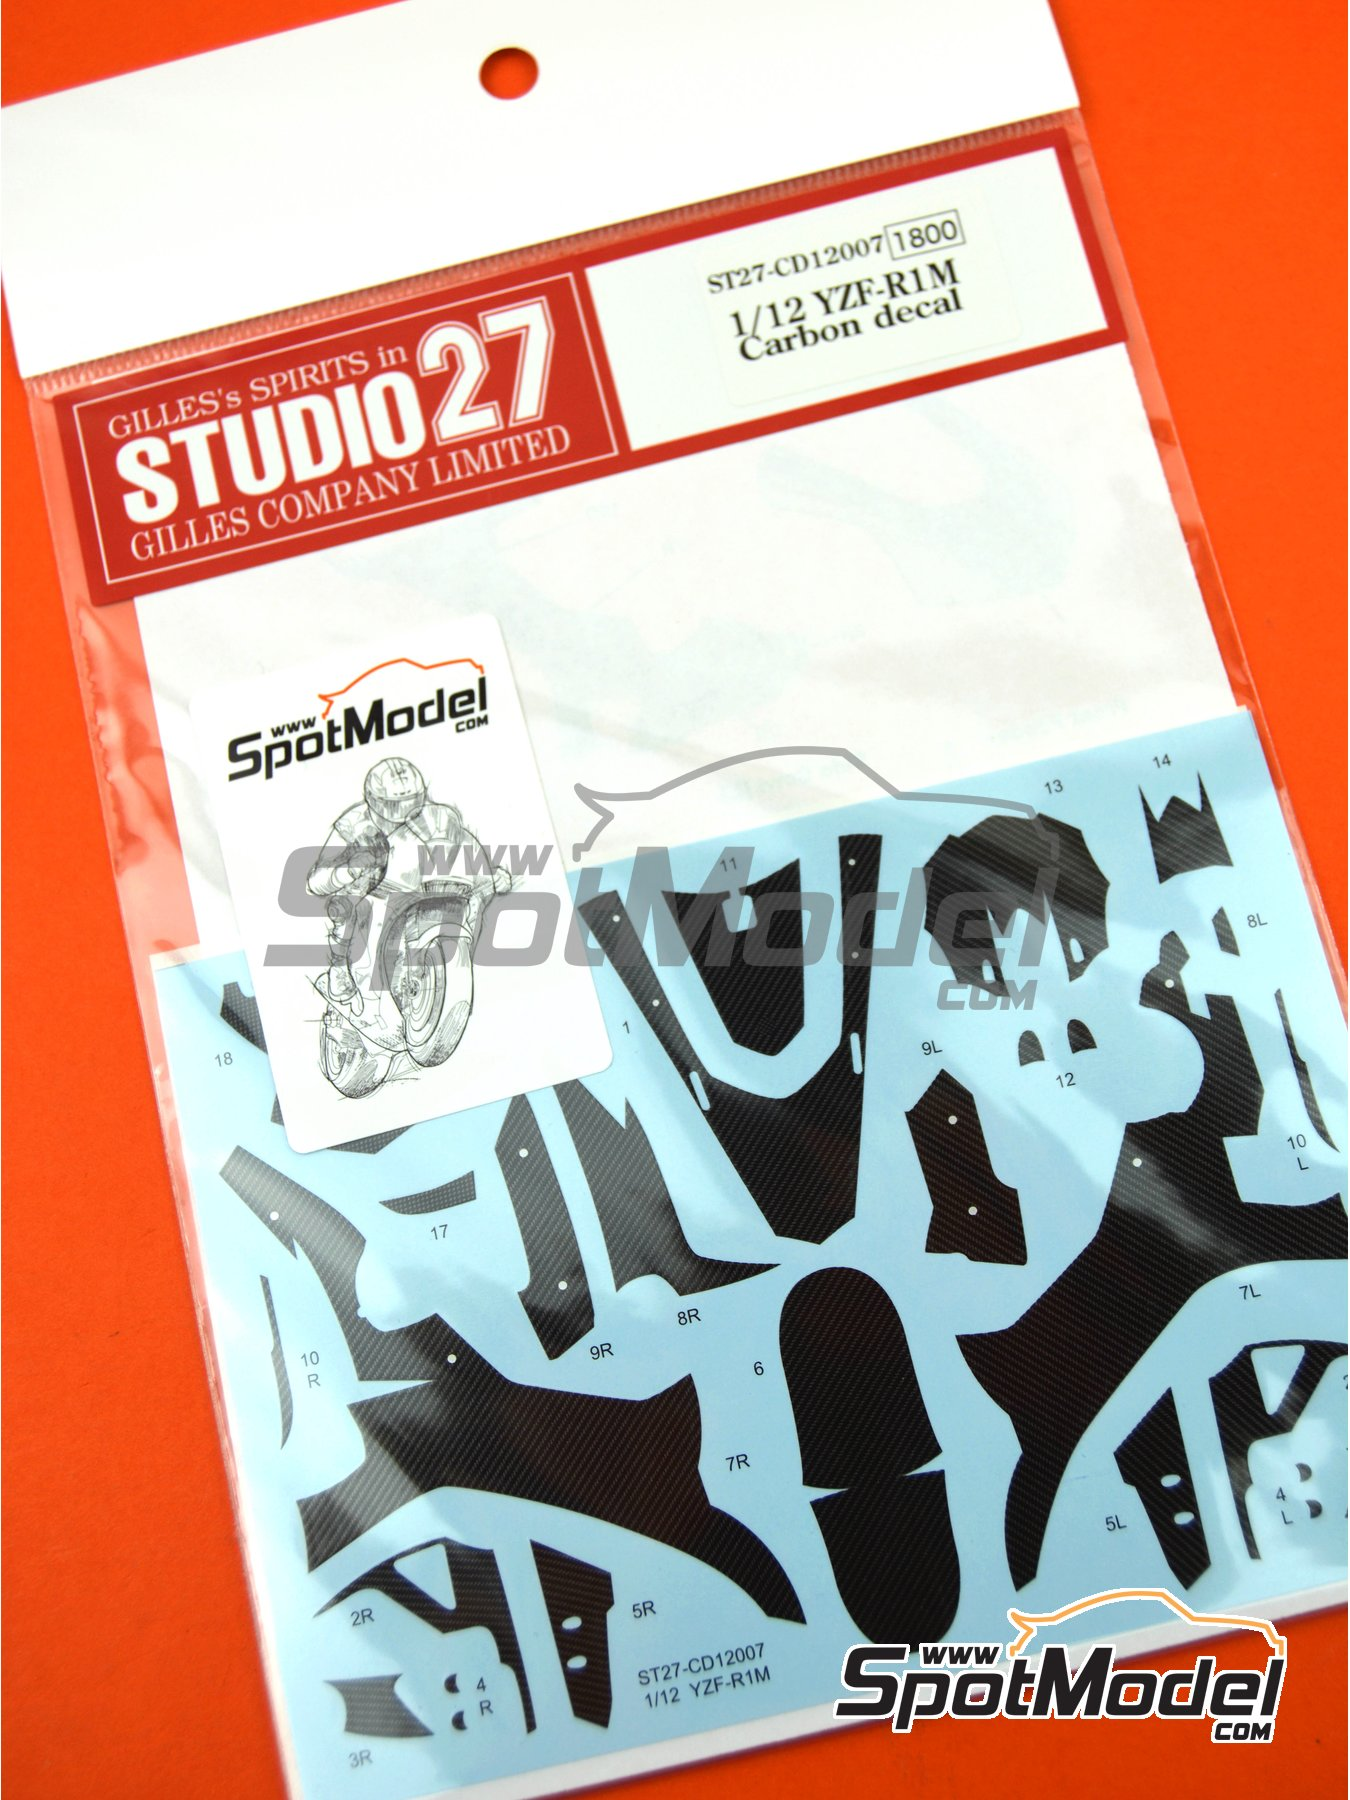 Yamaha YZF-R1M | Carbon fibre pattern decal in 1/12 scale manufactured by Studio27 (ref. ST27-CD12007, also 4545310018087, CD12007 and s27cd12007) image